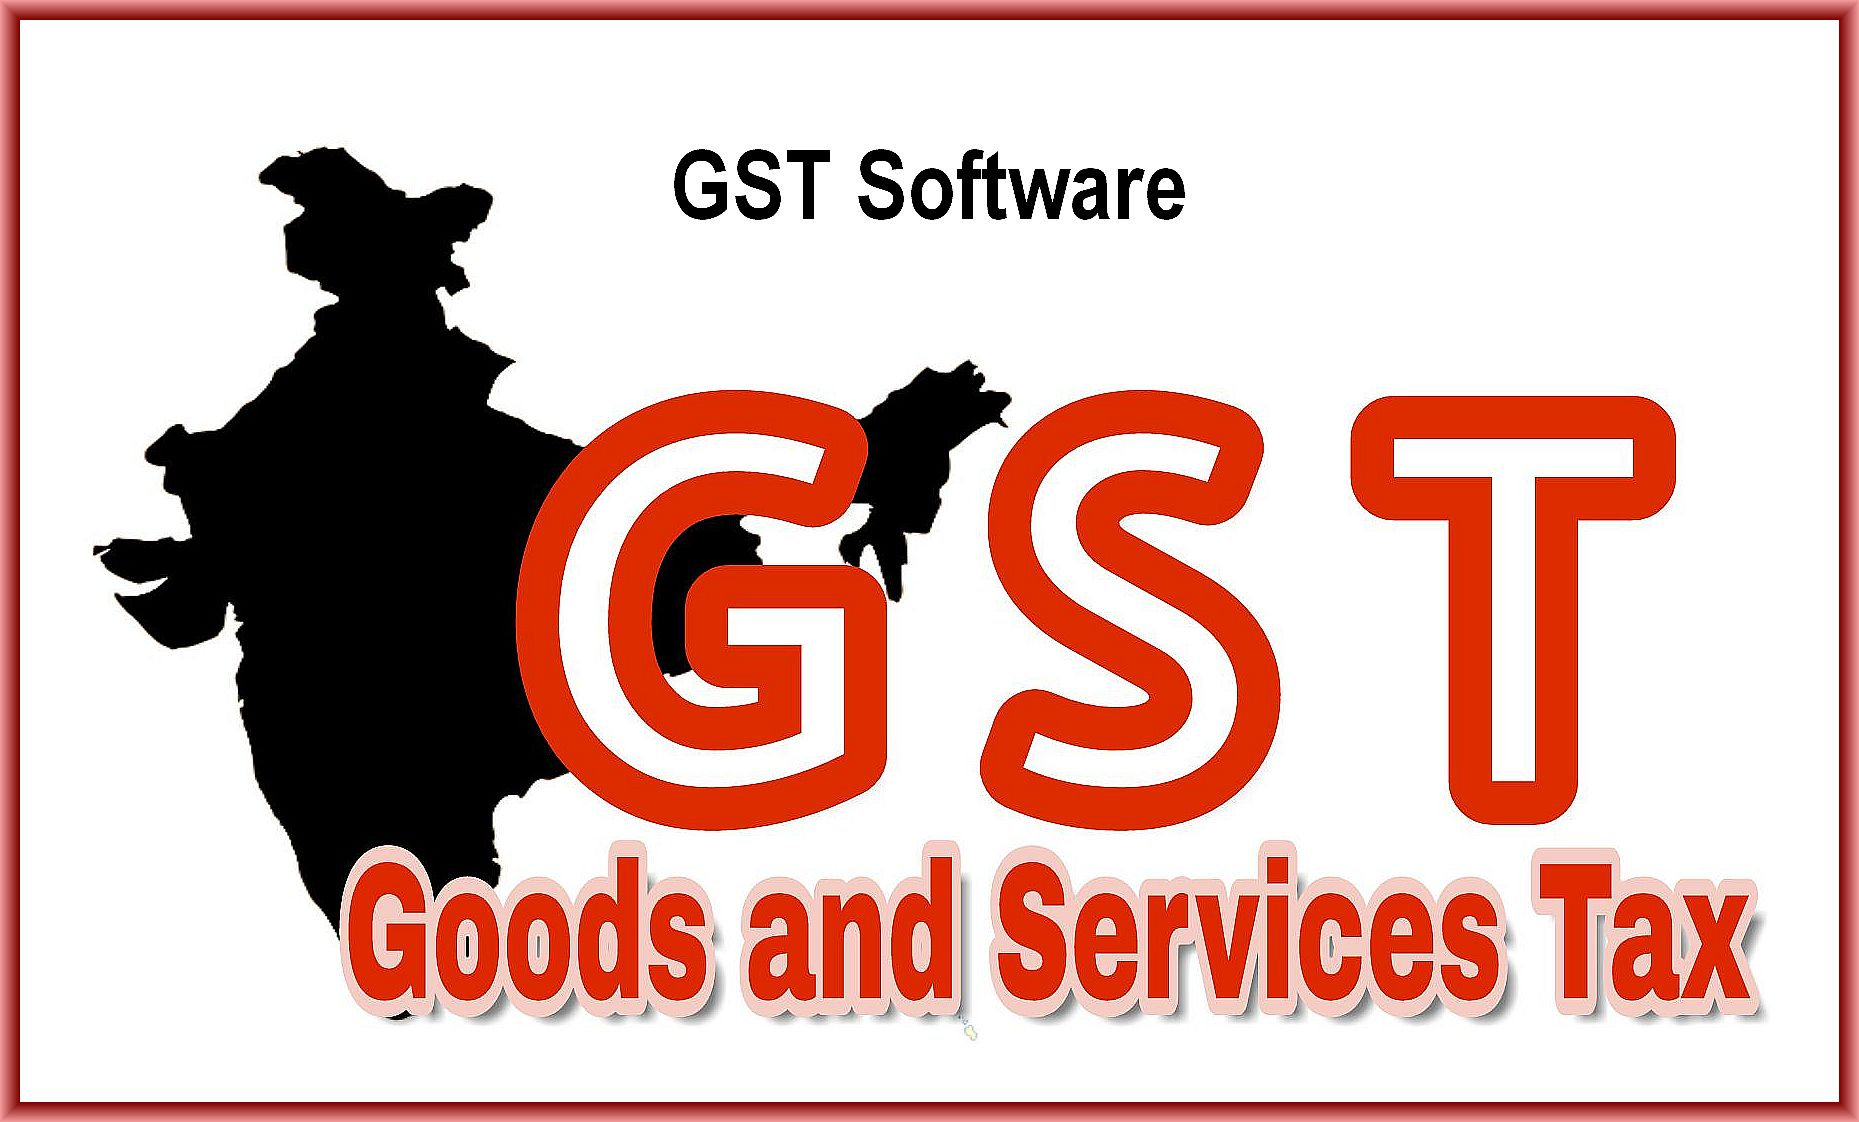 Best GST Software - Top 15 GST Softwares in India for 2019